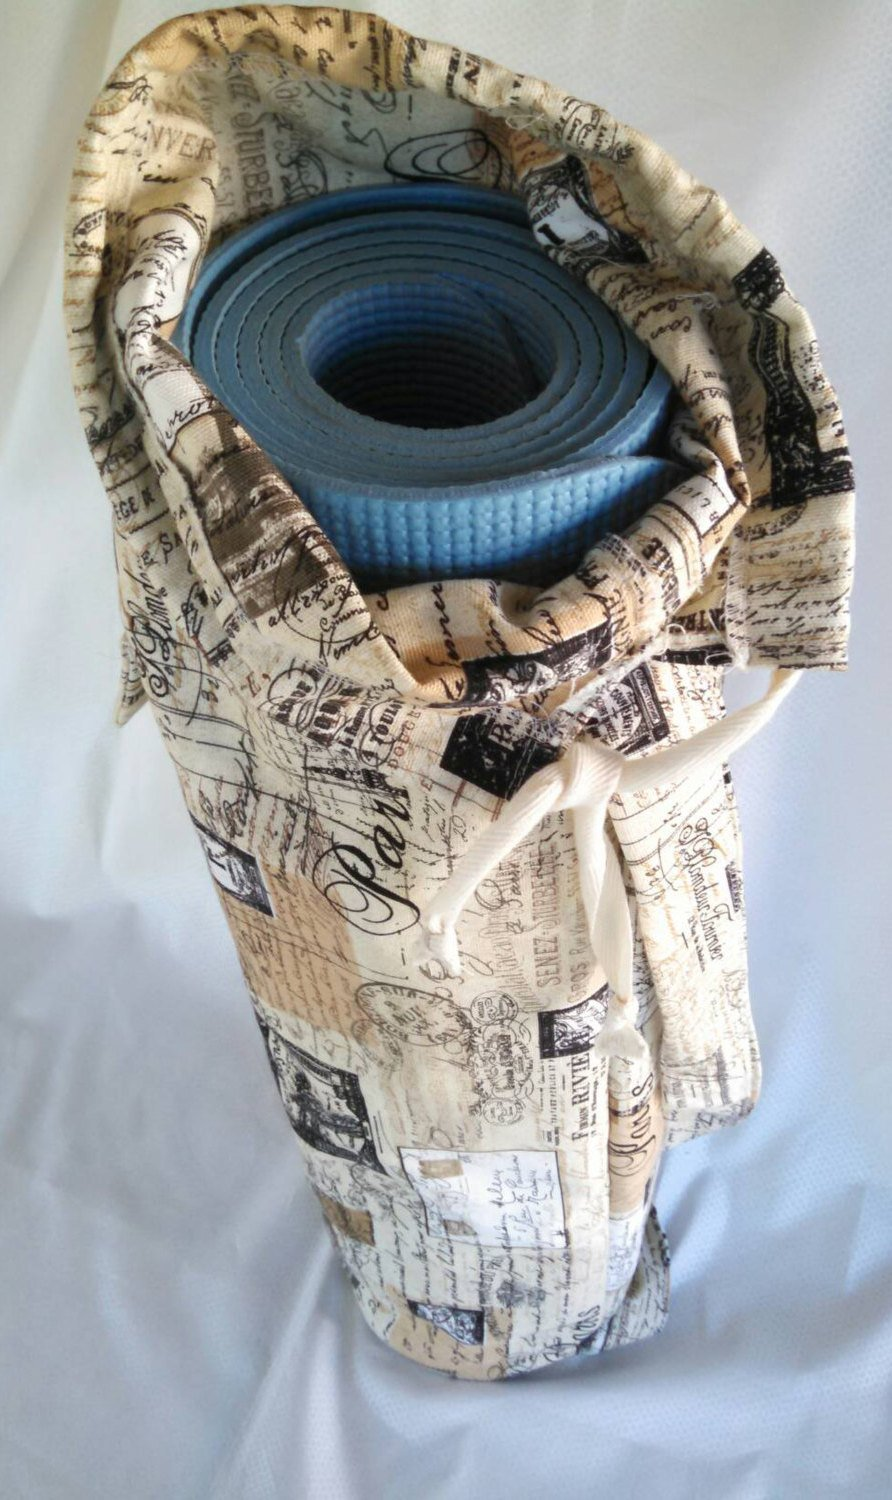 Yoga mat carrier